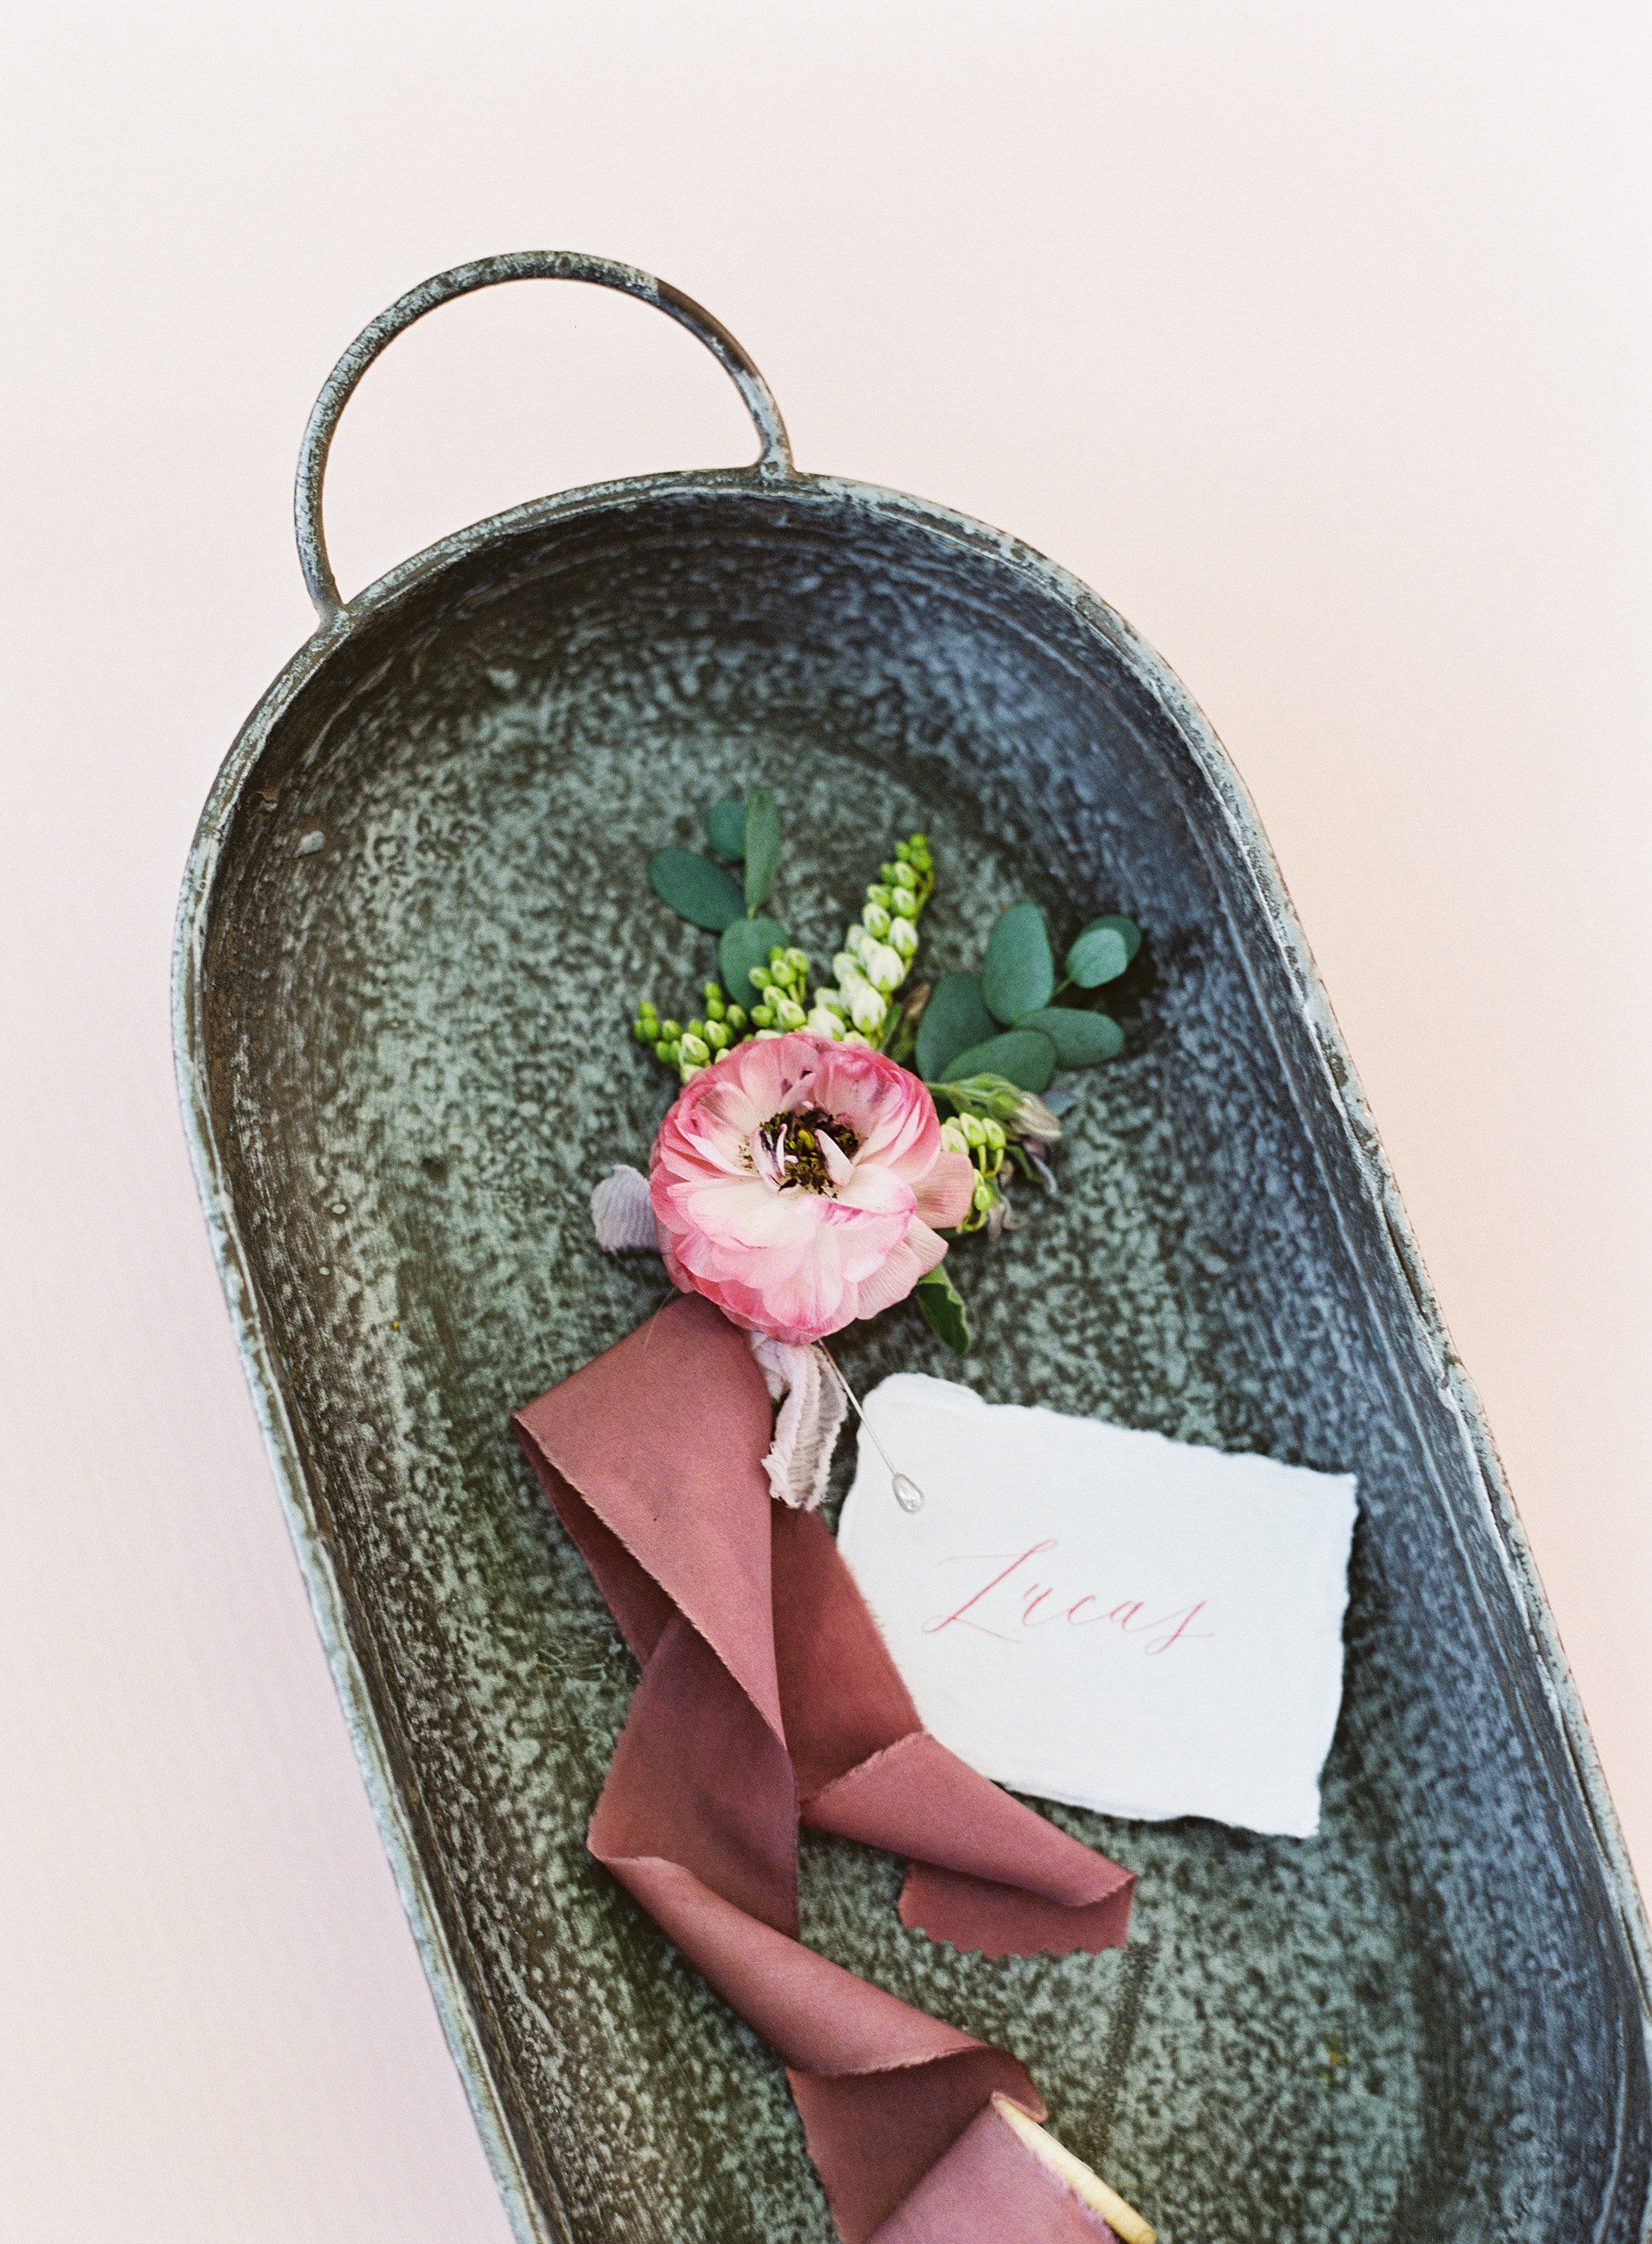 NathalieCheng_Monet_Styled_Shoot_Invitation_Details_043.jpg